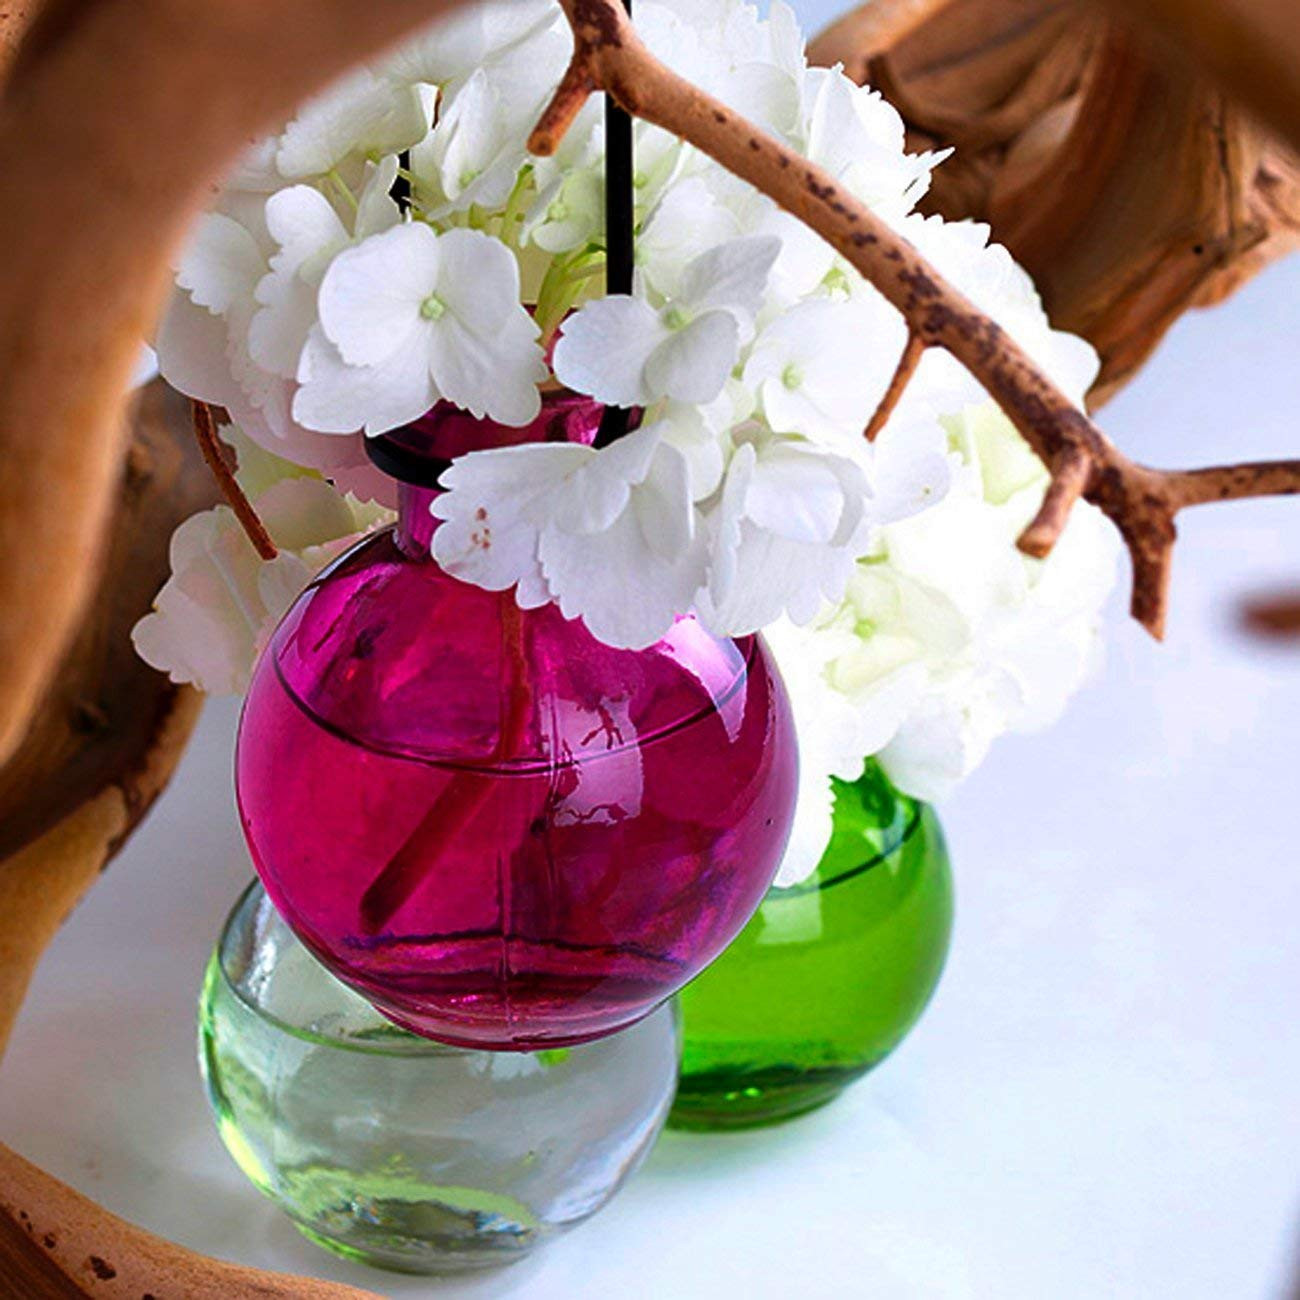 glass flower shaped bud vase of amazon com hanging flowers colored glass vase g70 clear 1 pc with amazon com hanging flowers colored glass vase g70 clear 1 pc colored glass bottle floral vas